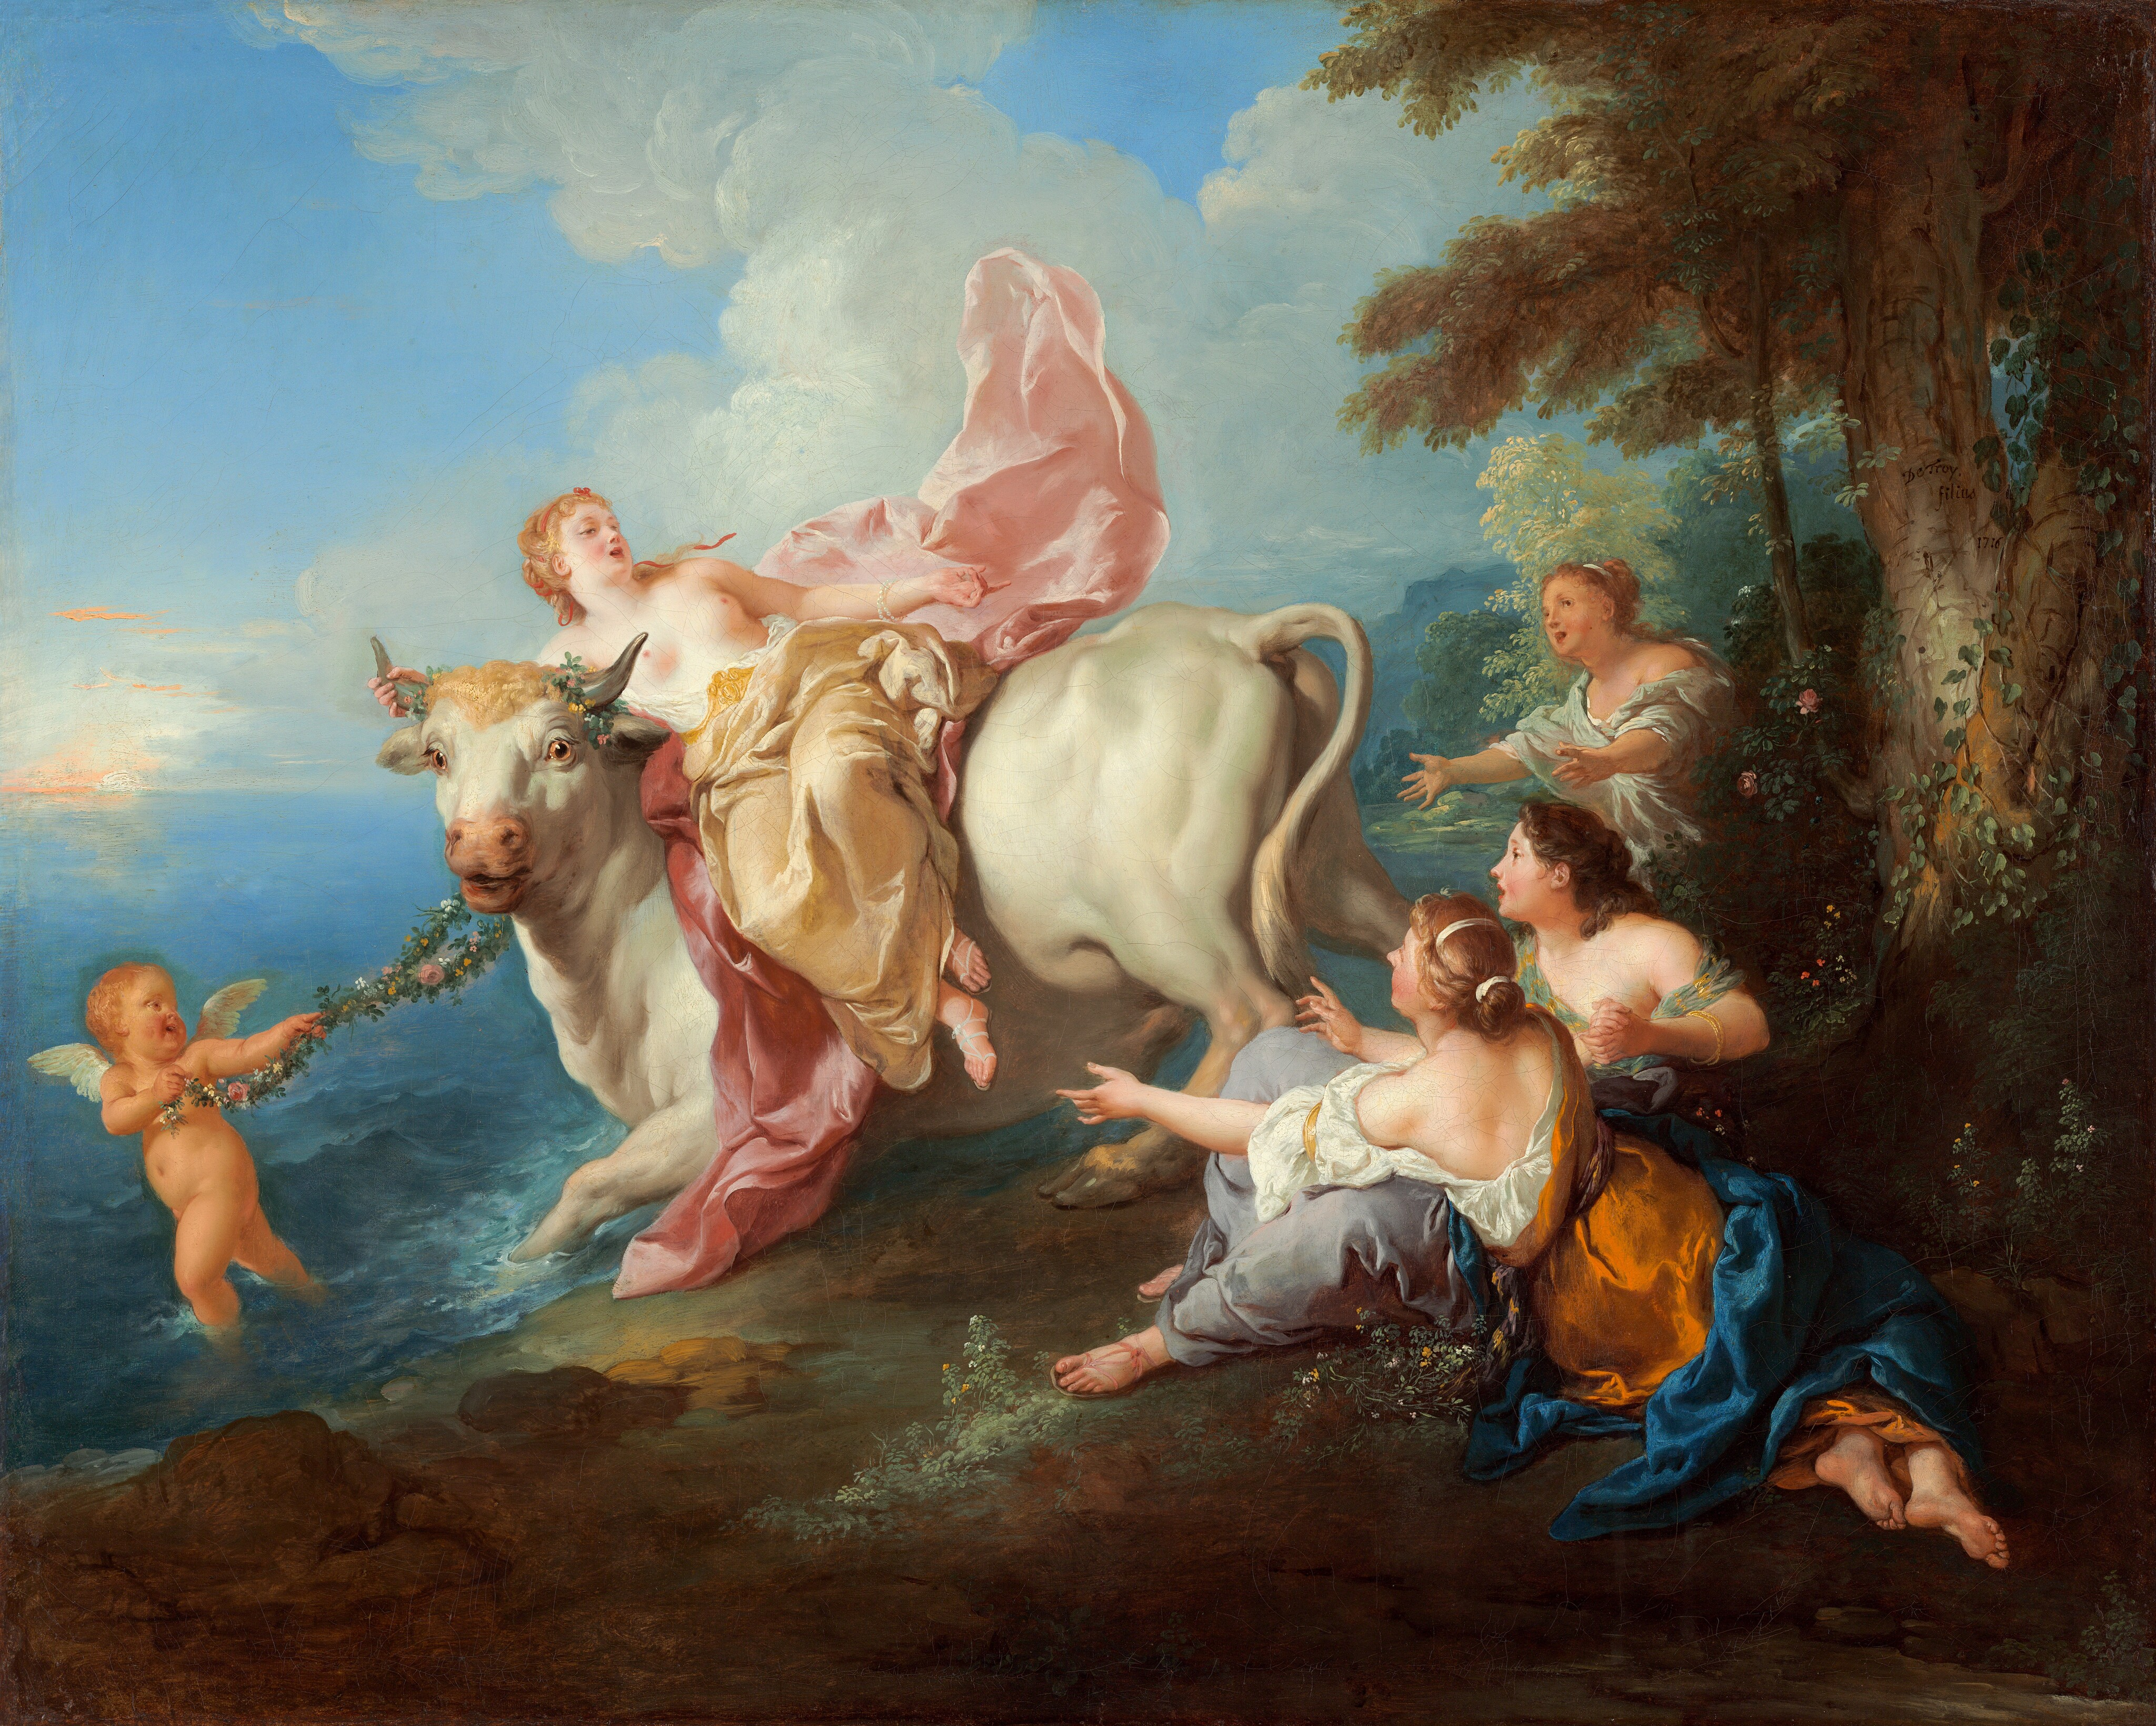 This delightful painting by Jean-François de Troy, one of the leading painters in Paris in the first half of the 18th century, portrays the climactic moment from Ovid's story in Metamorphoses—the Abduction of Europa. Jupiter has transformed himself into a handsome bull to lure the lovely princess Europa onto his back and carry her away to Crete where she would bear him three sons. From Rembrandt to Claude Lorrain to Paul Gauguin, this seminal story captured the imagination of European artists for centuries. Painted in rich colors with the light, refined brush characteristic of the works of de Troy's fellow members of the Académie Royale de Peinture et de Sculpture, Antoine Watteau and FranÃ\u0083§ois Boucher, this painting offers a classical mythological subject in a rococo style that gracefully compliments the National Gallery's collection.